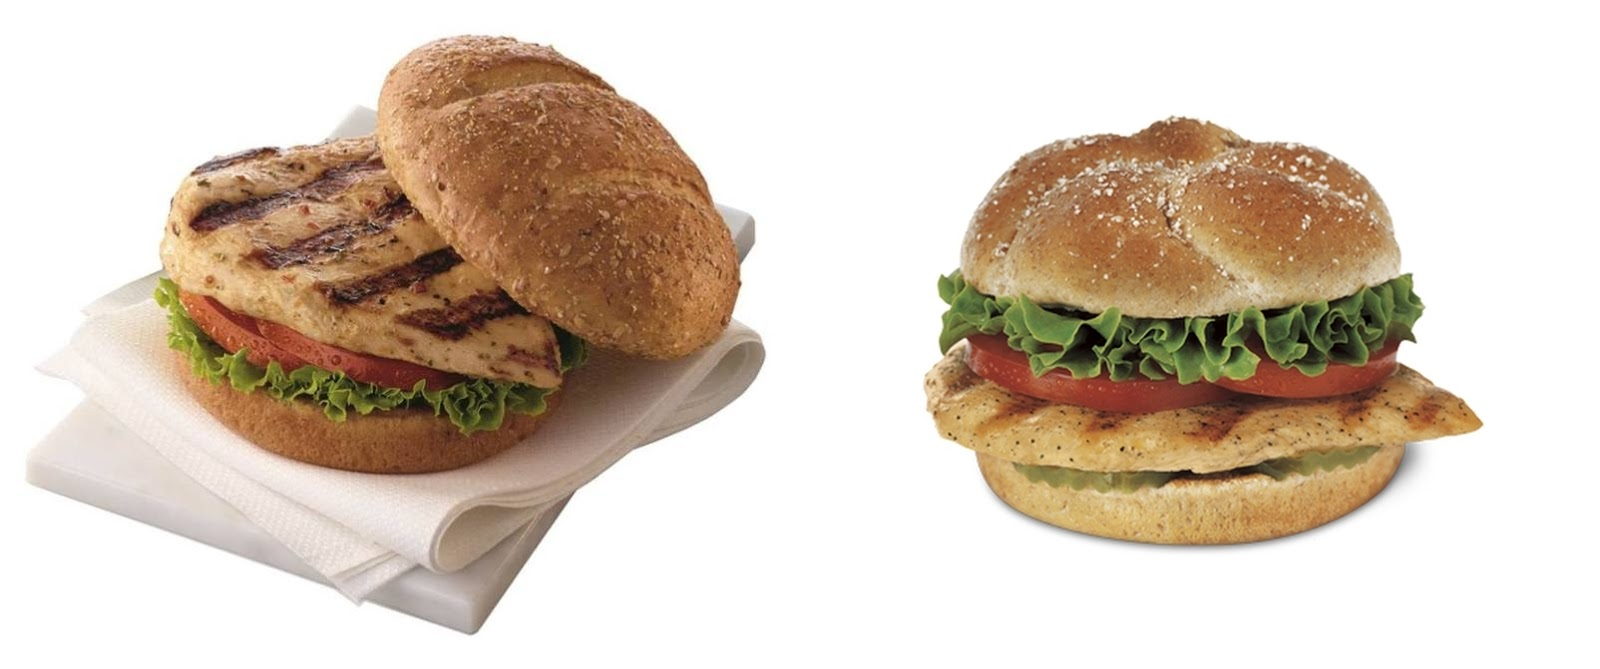 News Chick Fil A Testing New Grilled Chicken Brand Eating